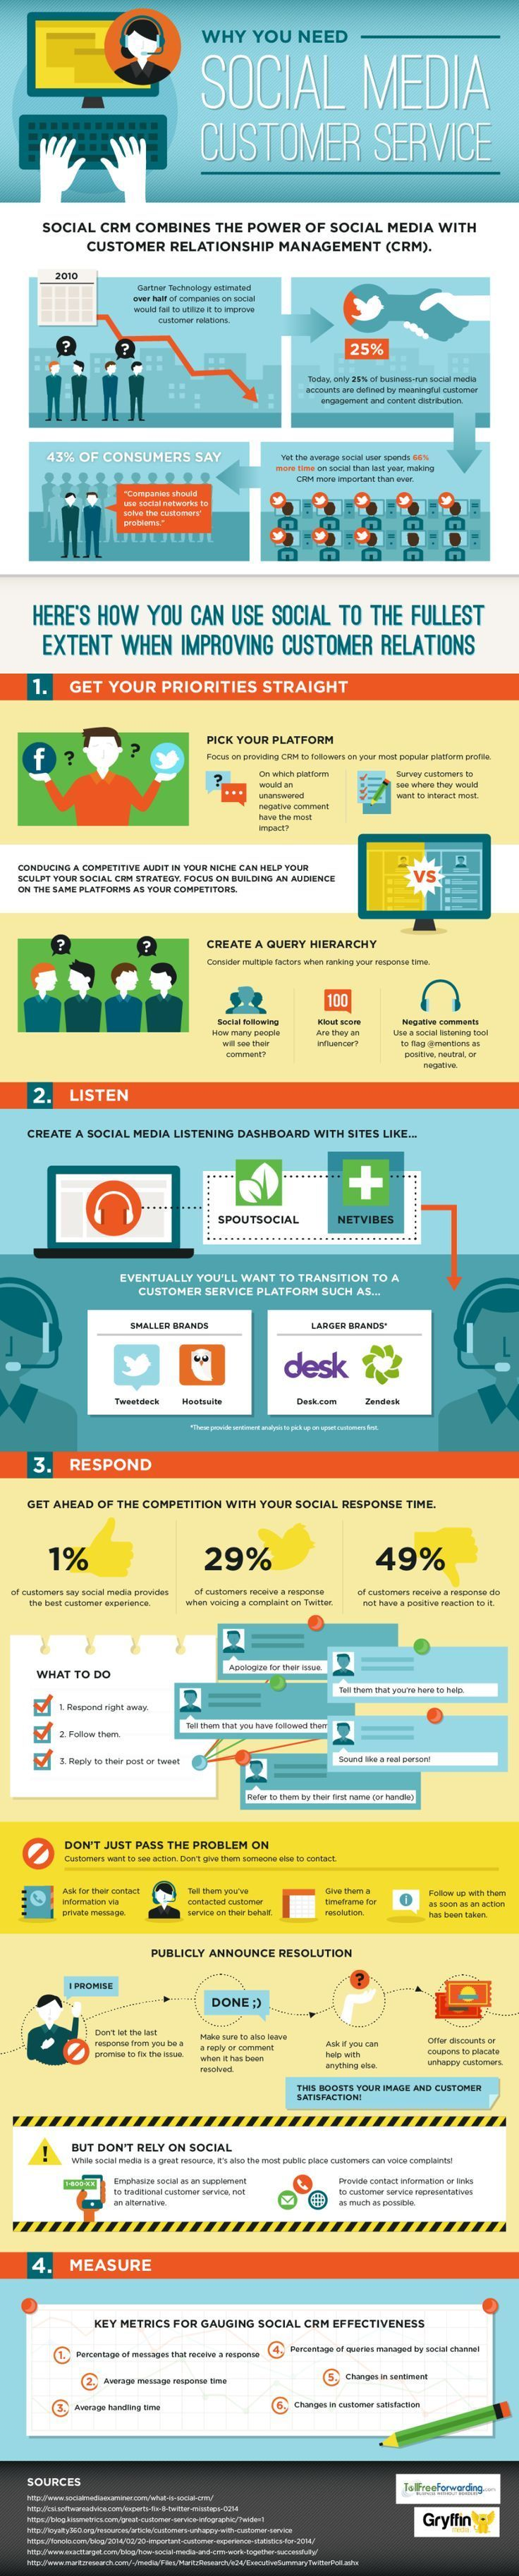 Why you need Social media customer service #infographic